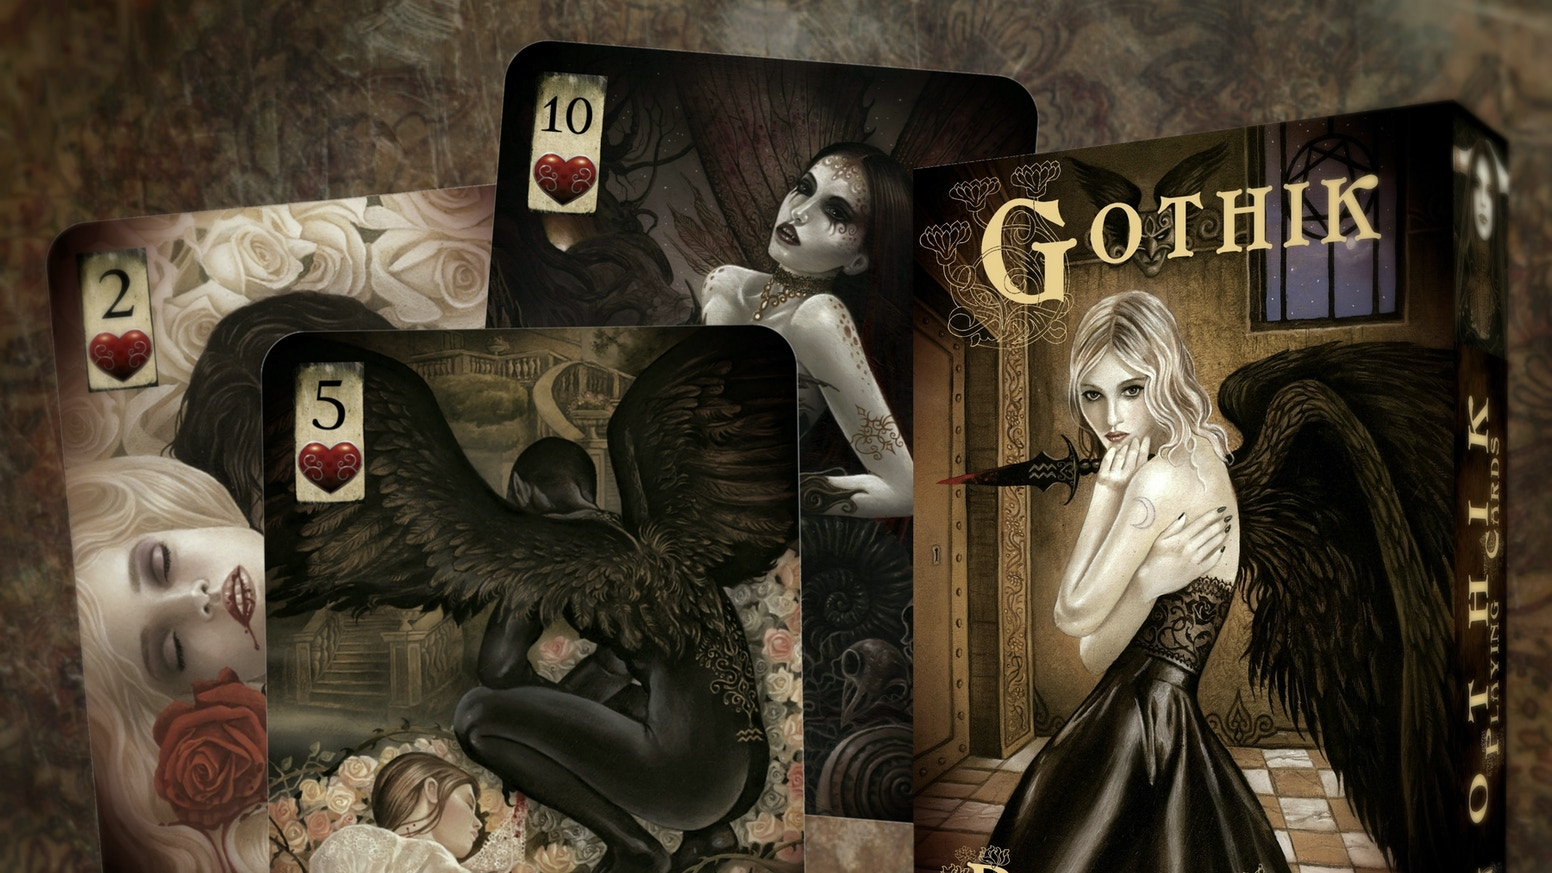 A lavish hand-painted gothic themed deck of playing cards, featuring beautiful artwork of Vampires, Dark Angels and Night Creatures.